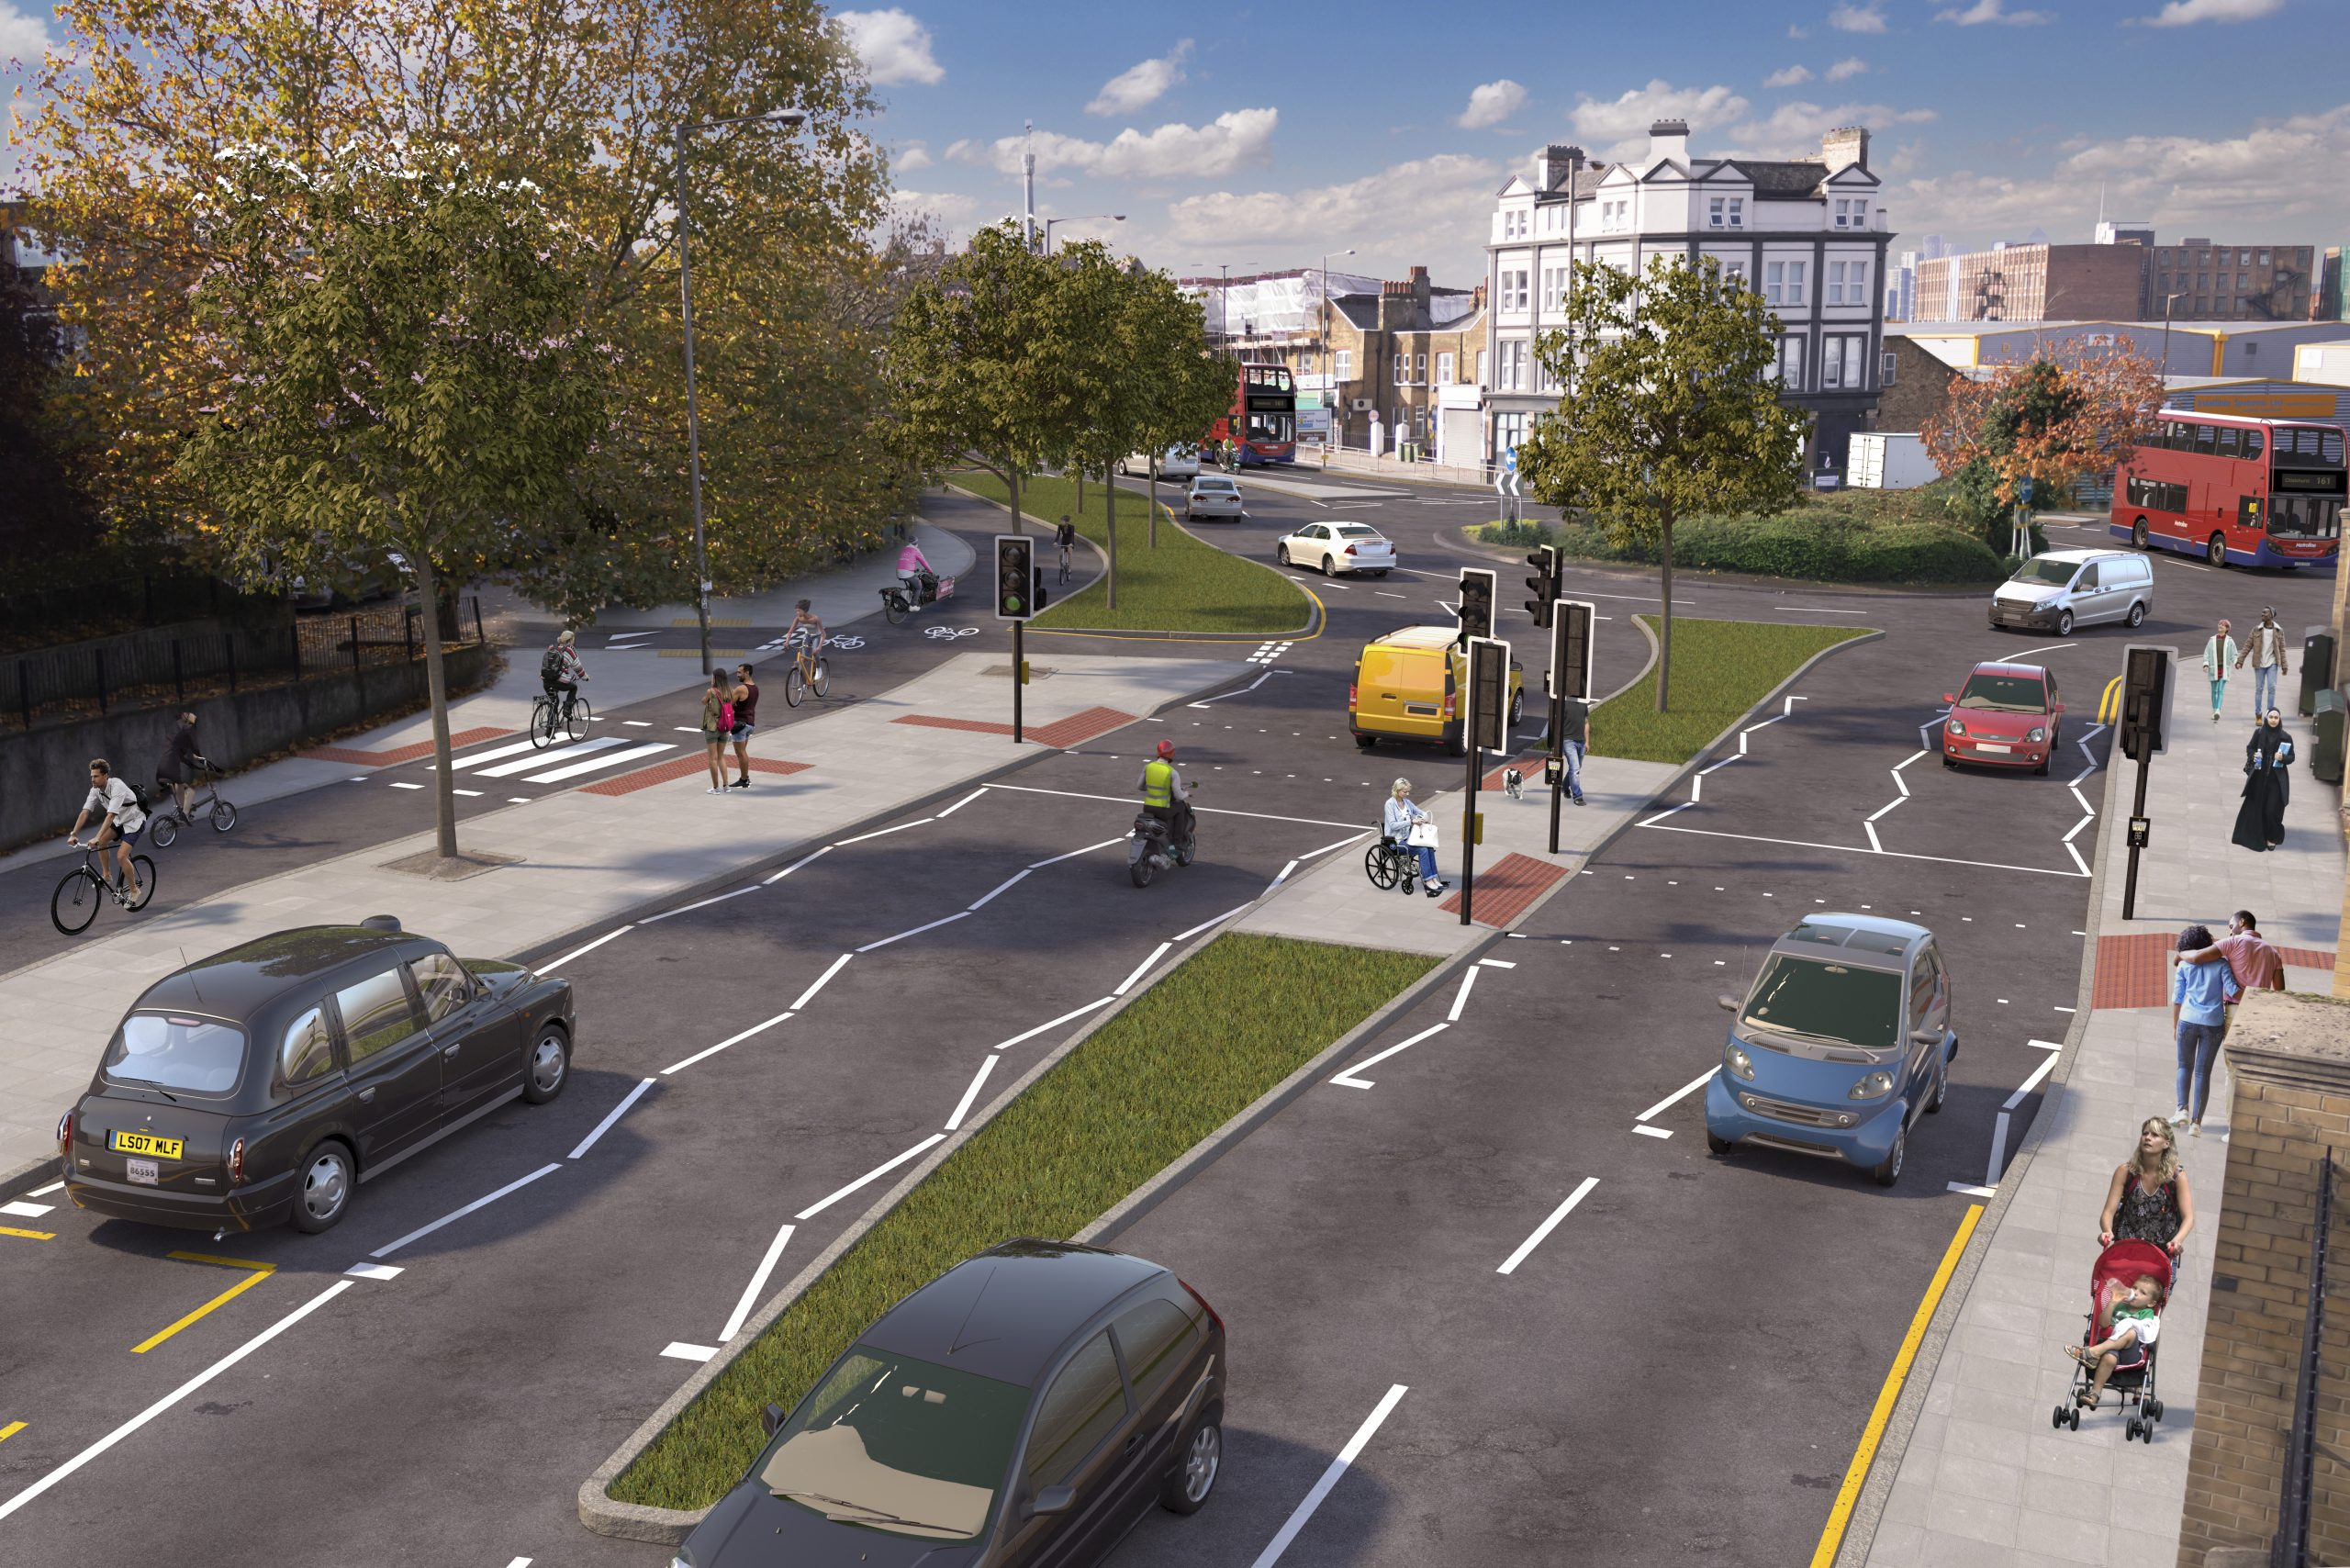 New cycleway set to open between Greenwich and Woolwich - CityAM